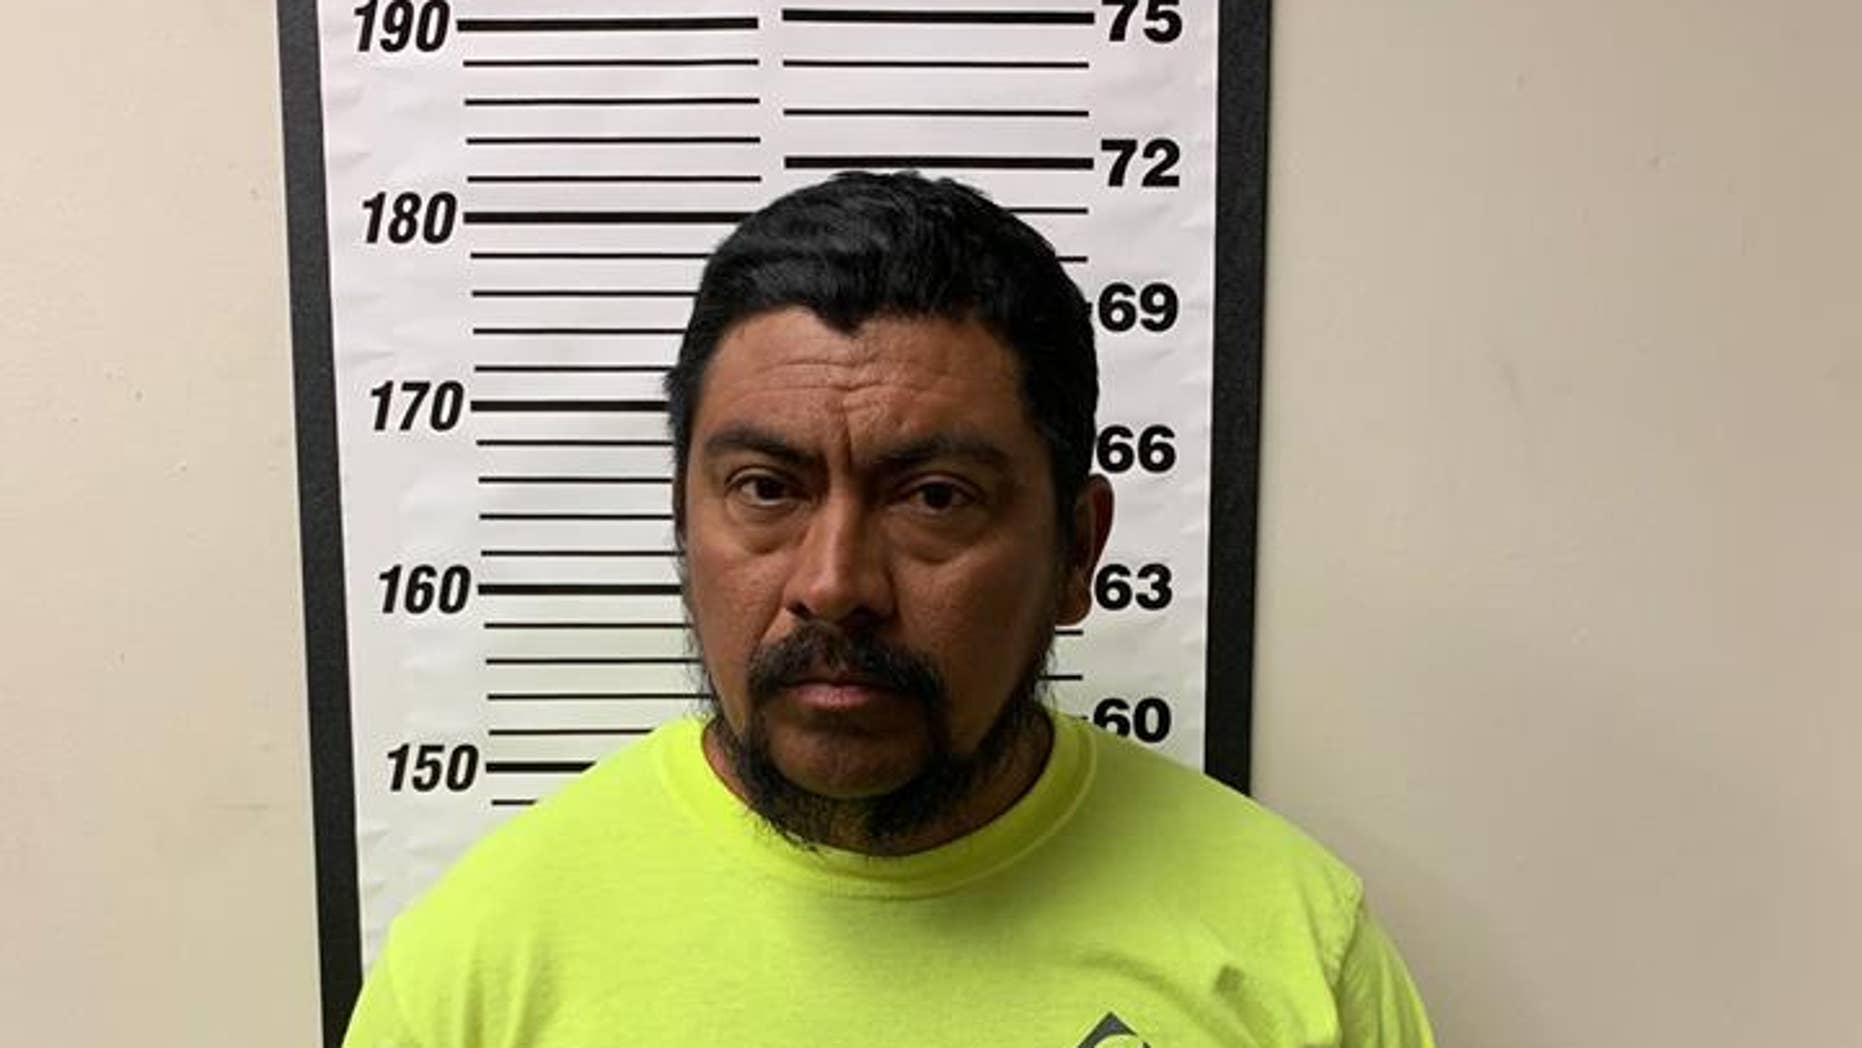 Marvin Yovani Mejia Ramos, 50, was reportedly deported in 2013 and 2015.